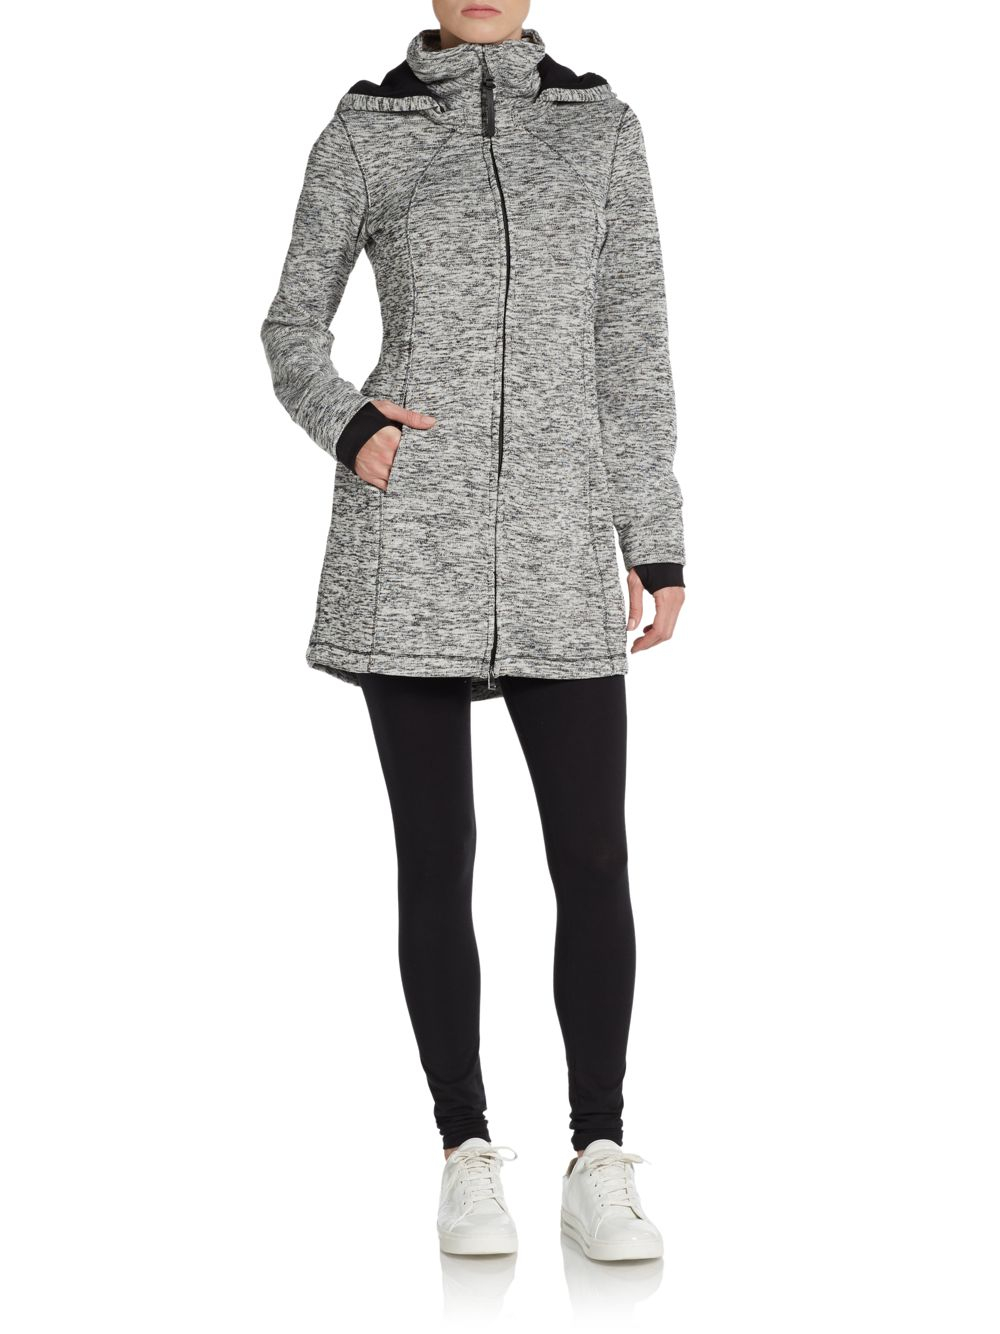 lyst calvin klein marled hooded performance jacket in gray